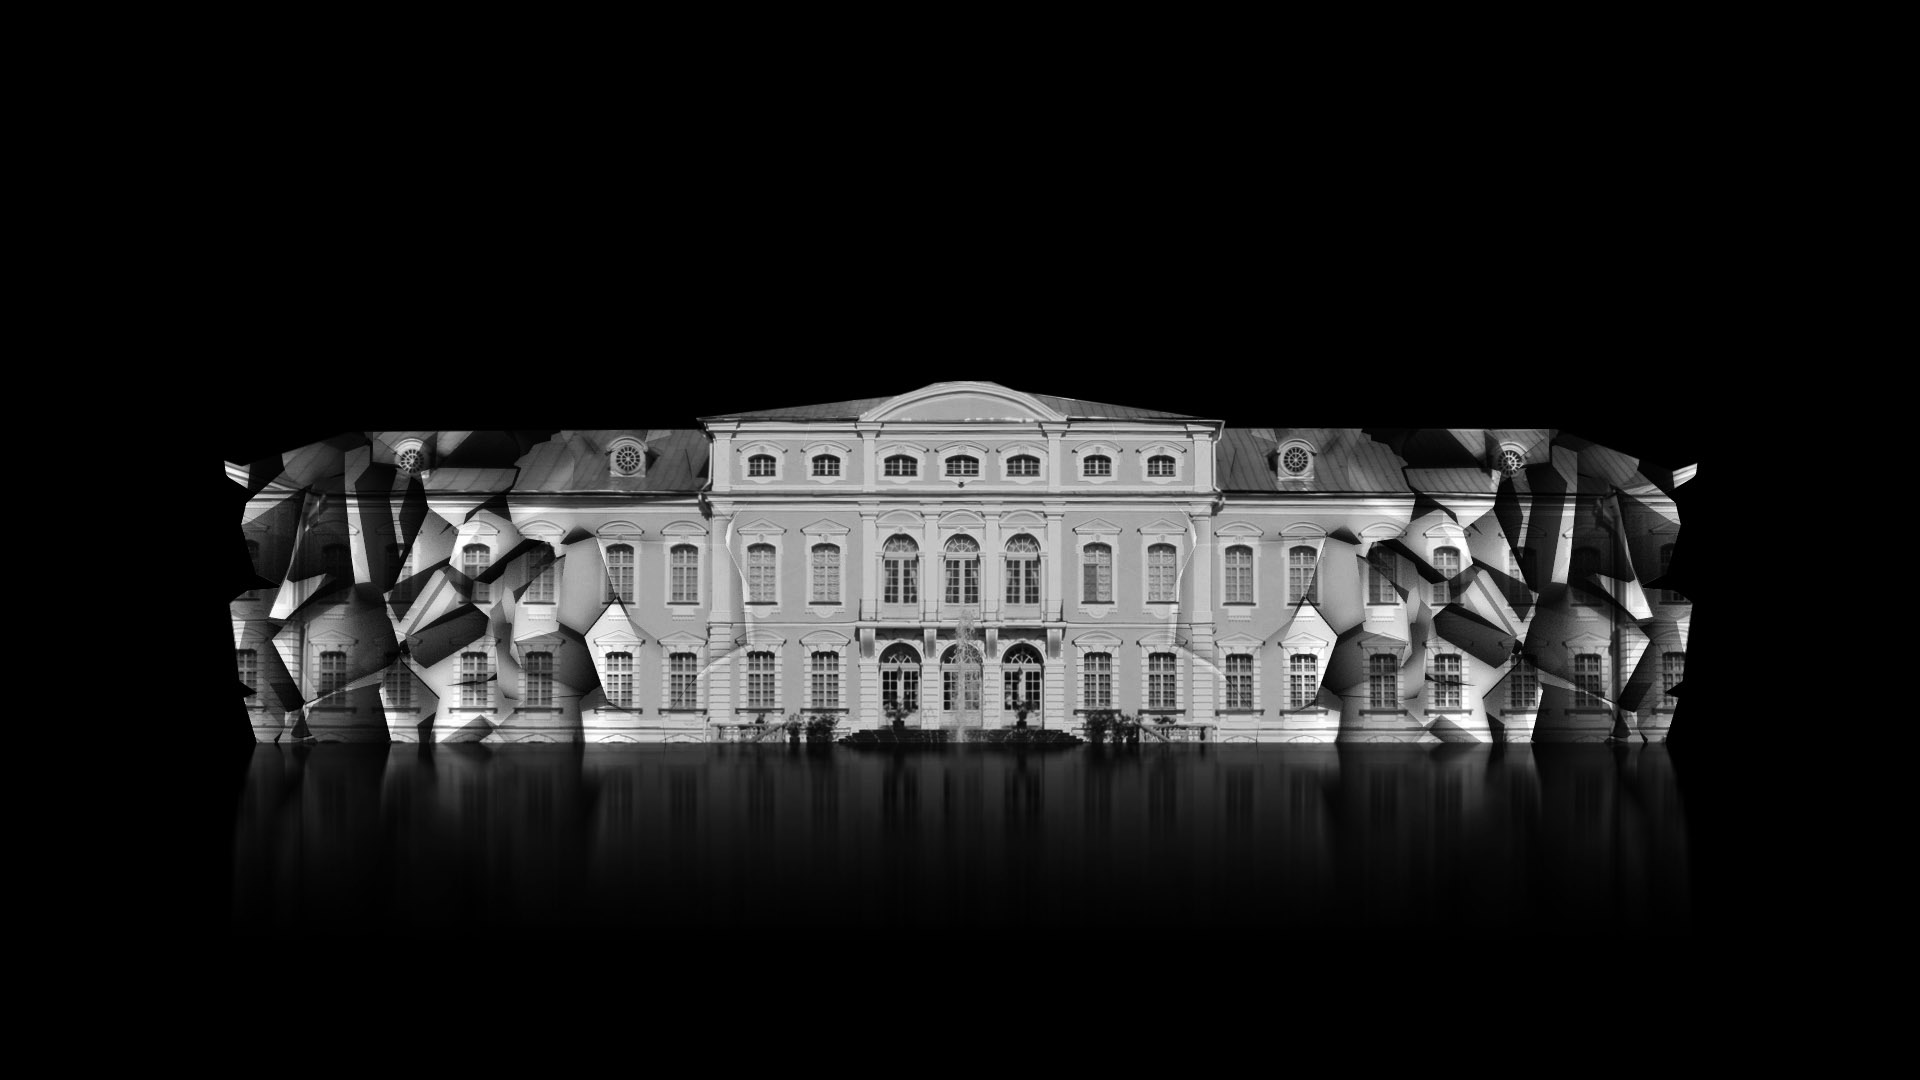 ultrawide video mapping projection architecture